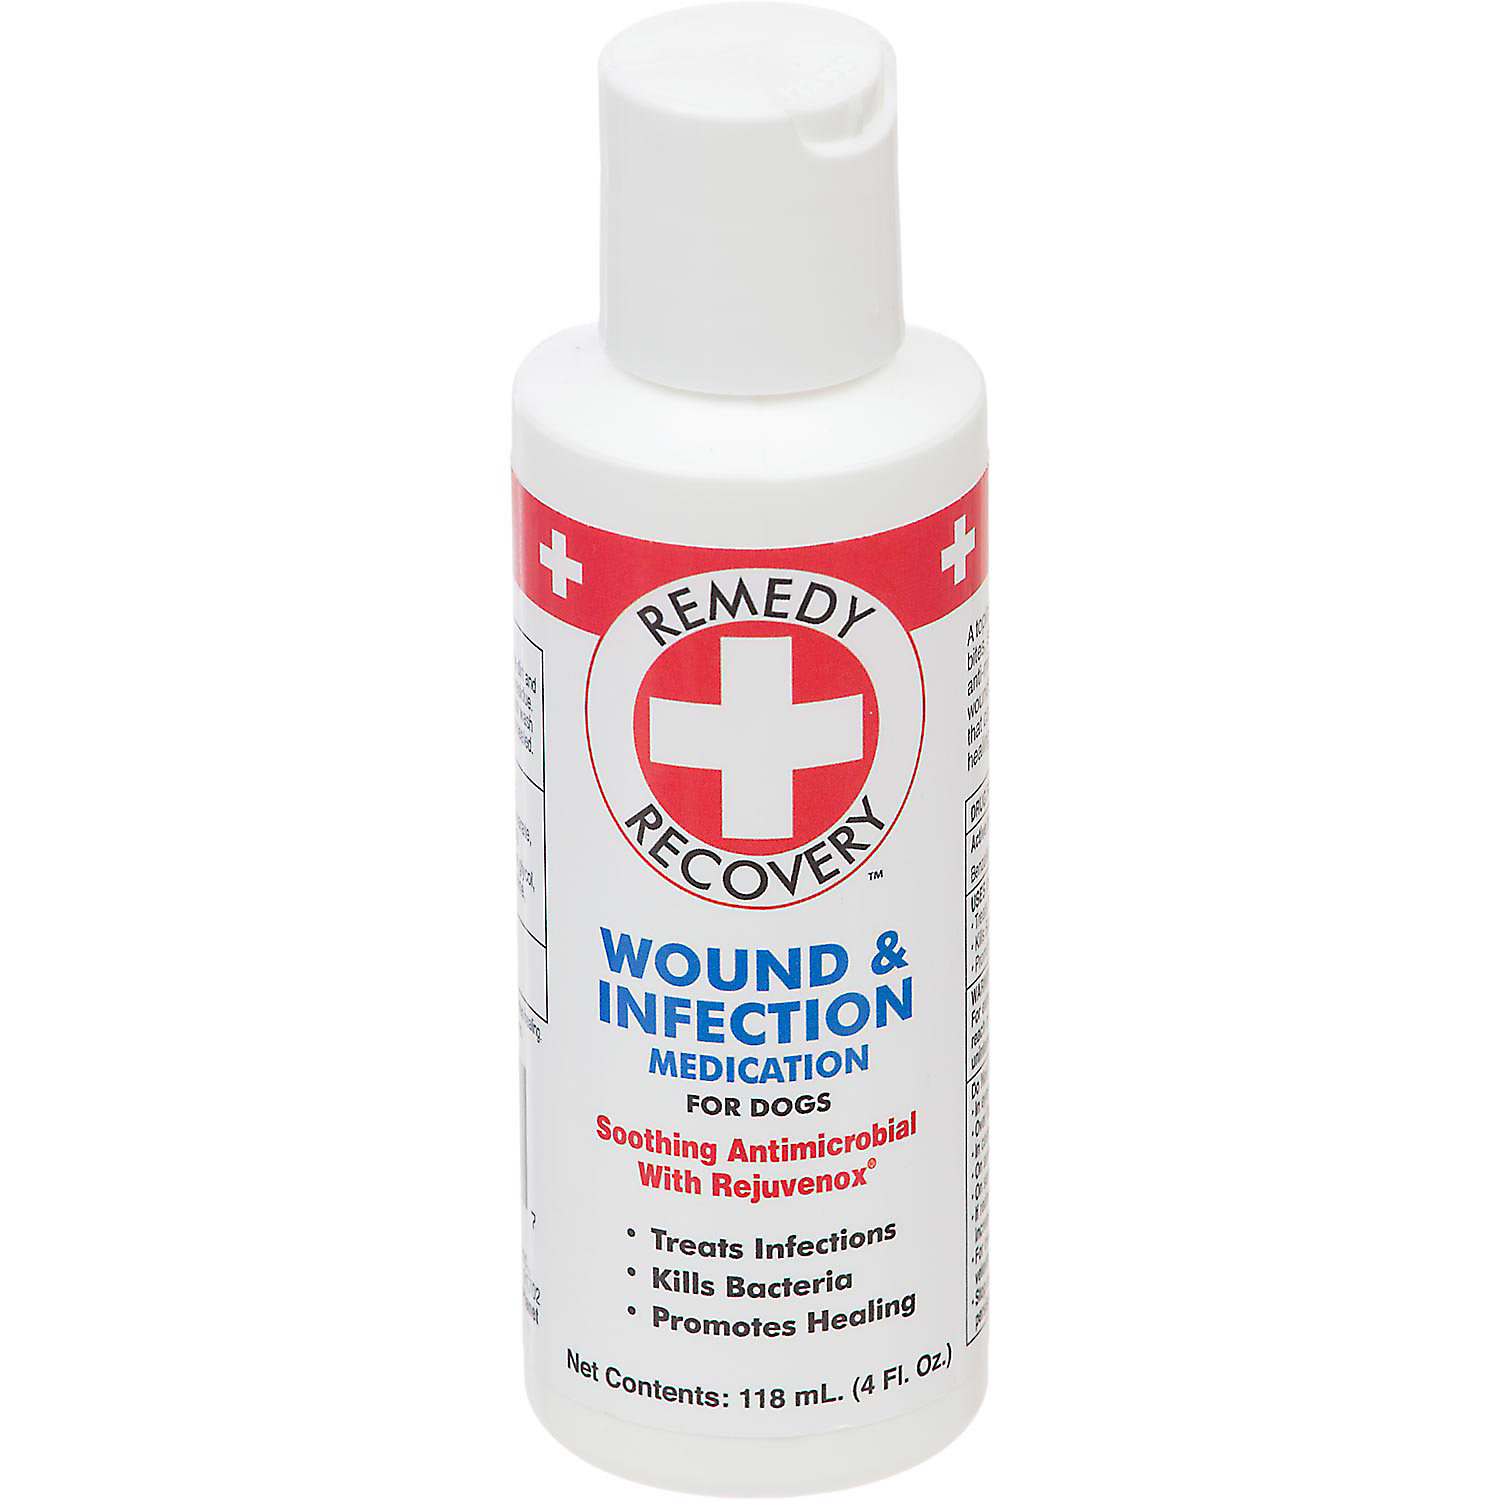 Remedyrecovery Wound Infection Medication For Dogs